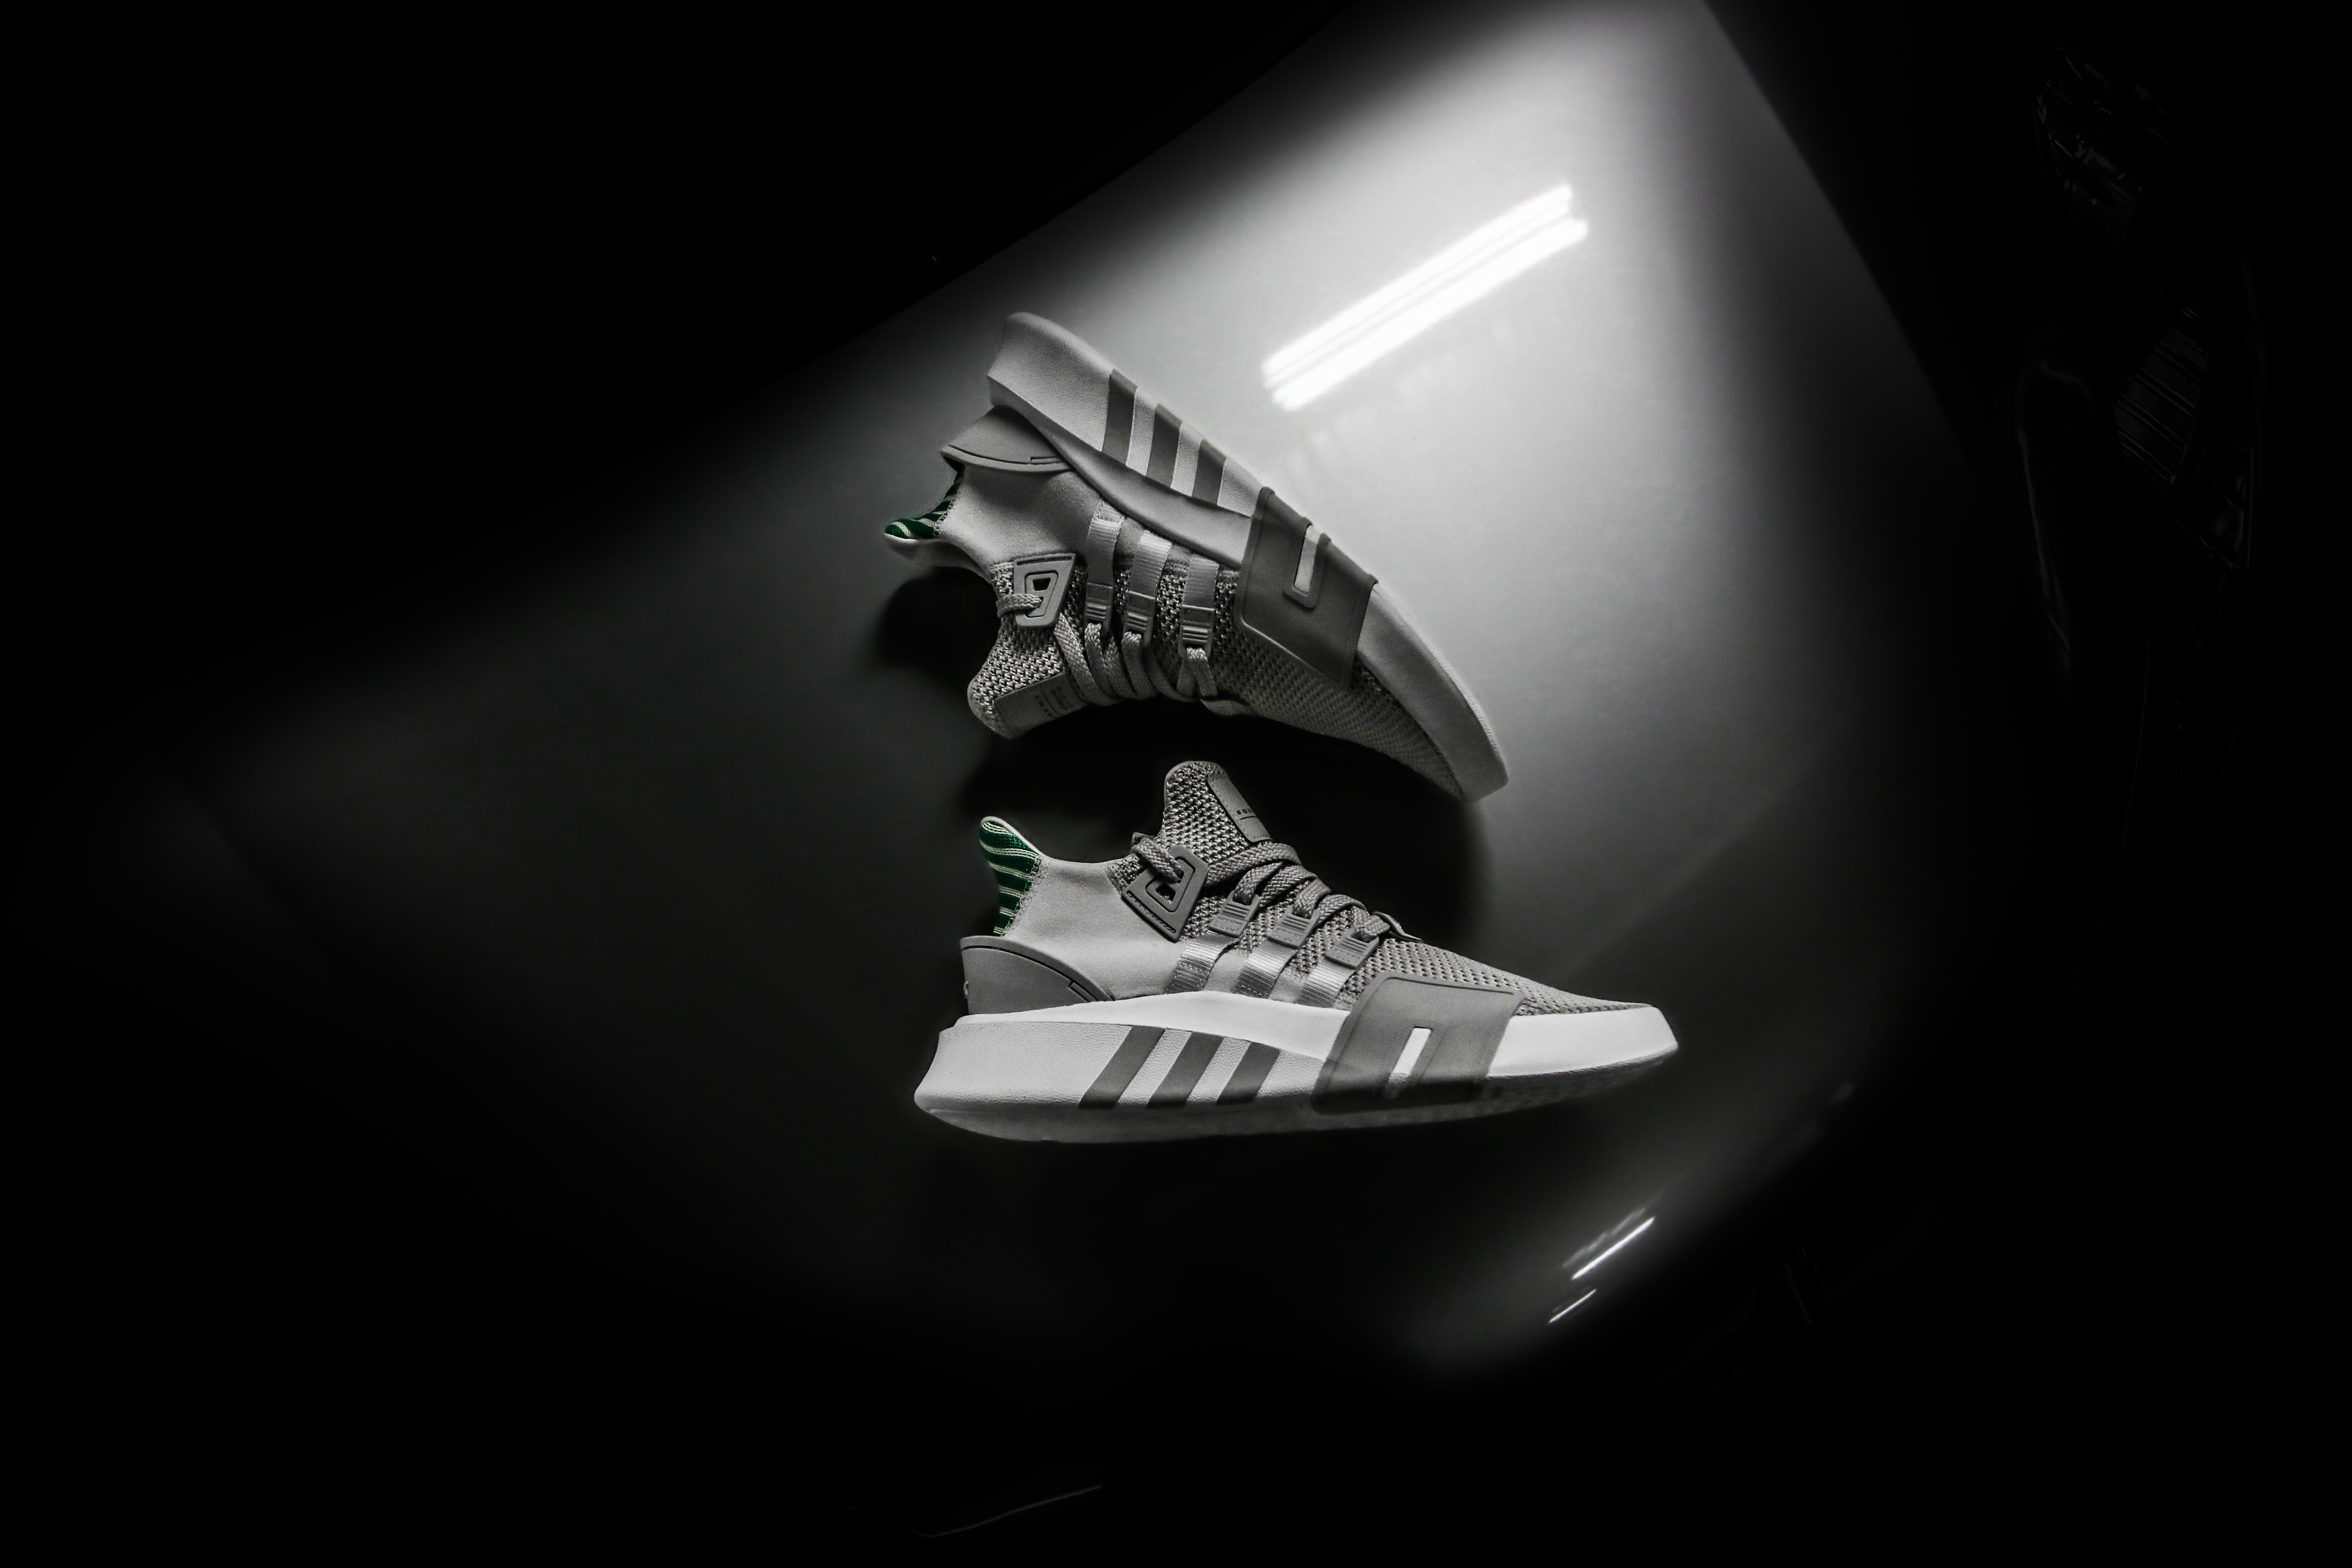 grayscale photo pair of adidas shoes